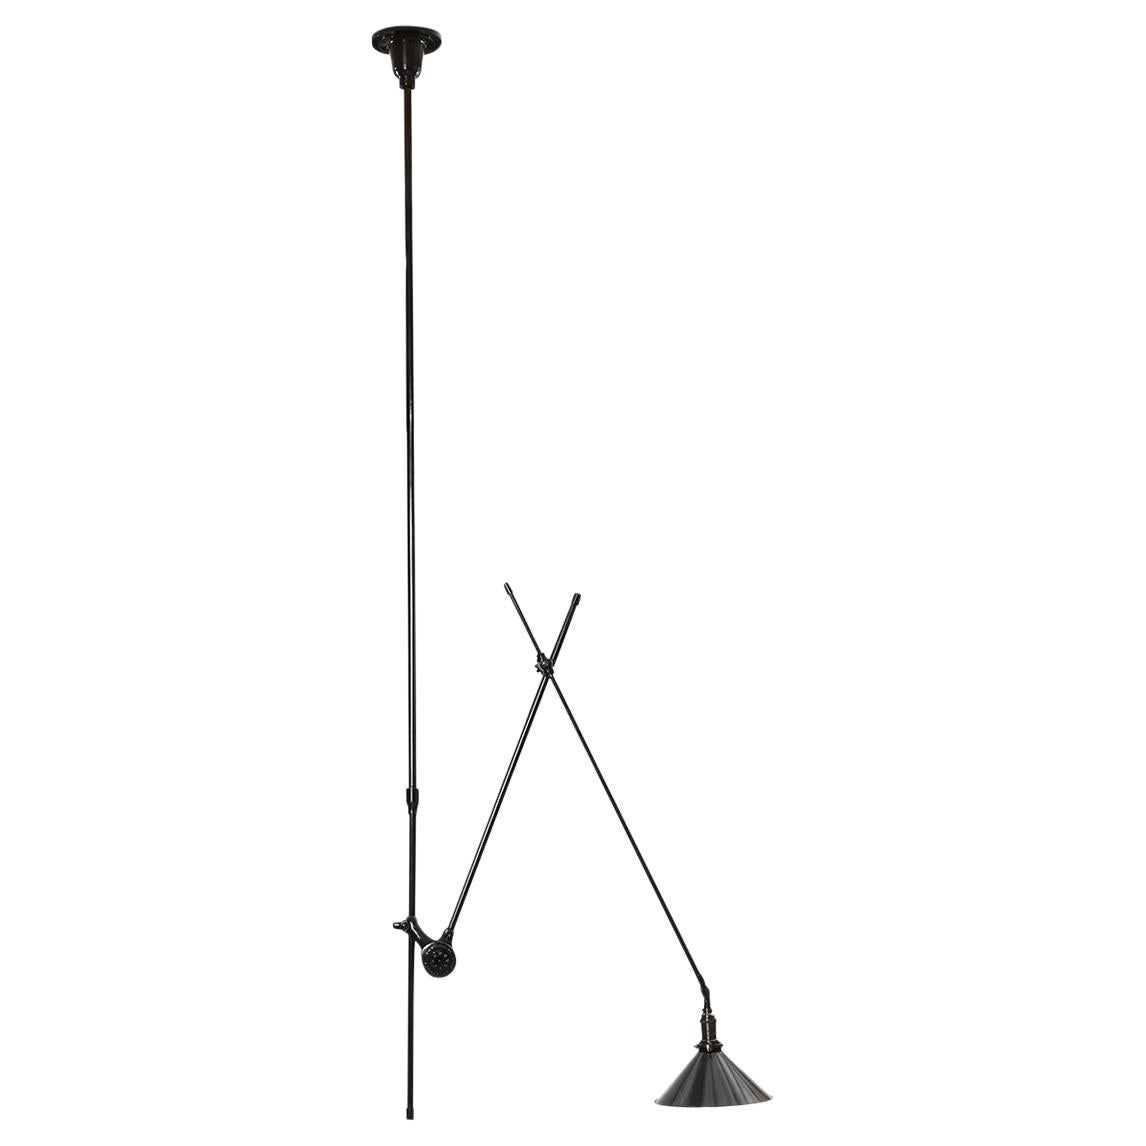 Articulating Industrial Ceiling Lamp by O.C. White